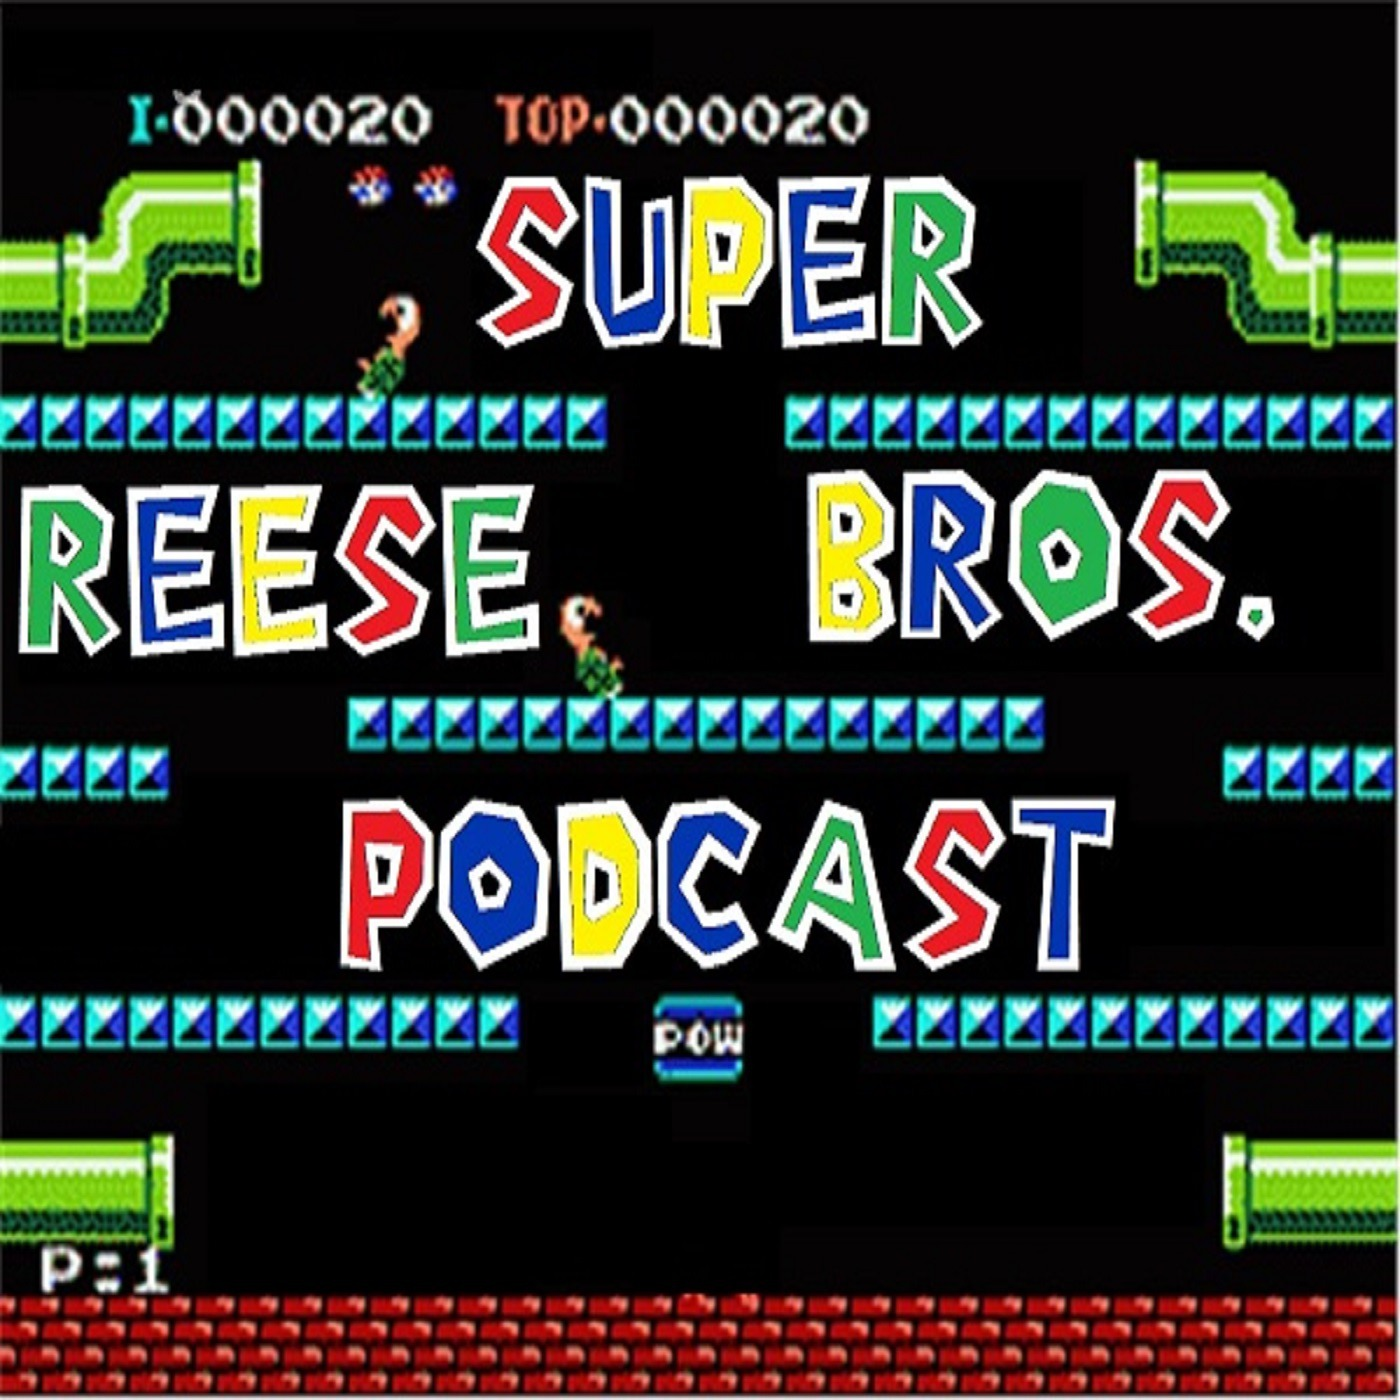 TheSuperReeseBros' Podcast